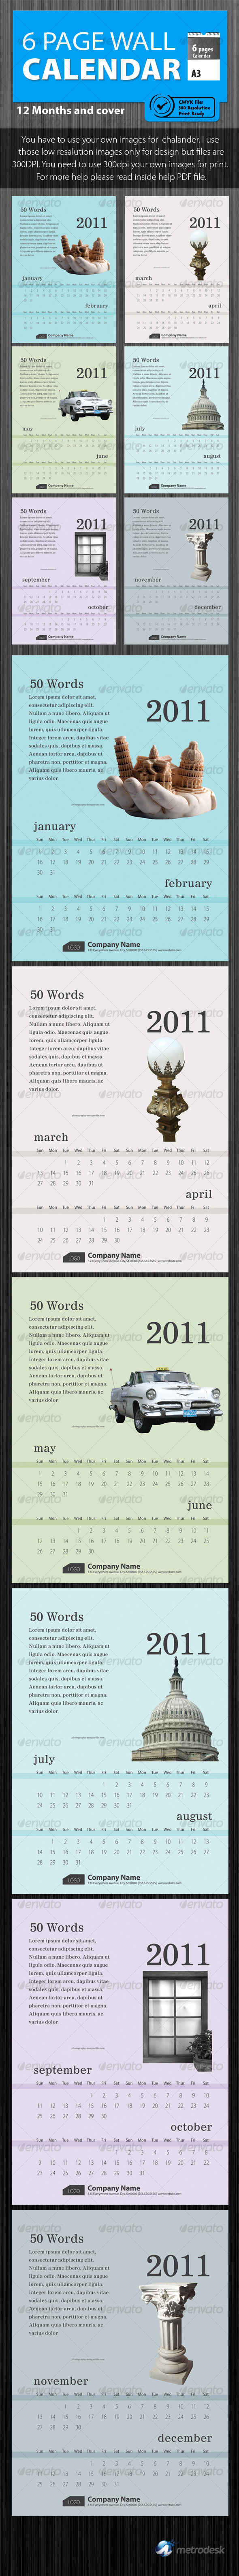 GraphicRiver Wall calendar 2011 [6 Page] Print Ready 118070